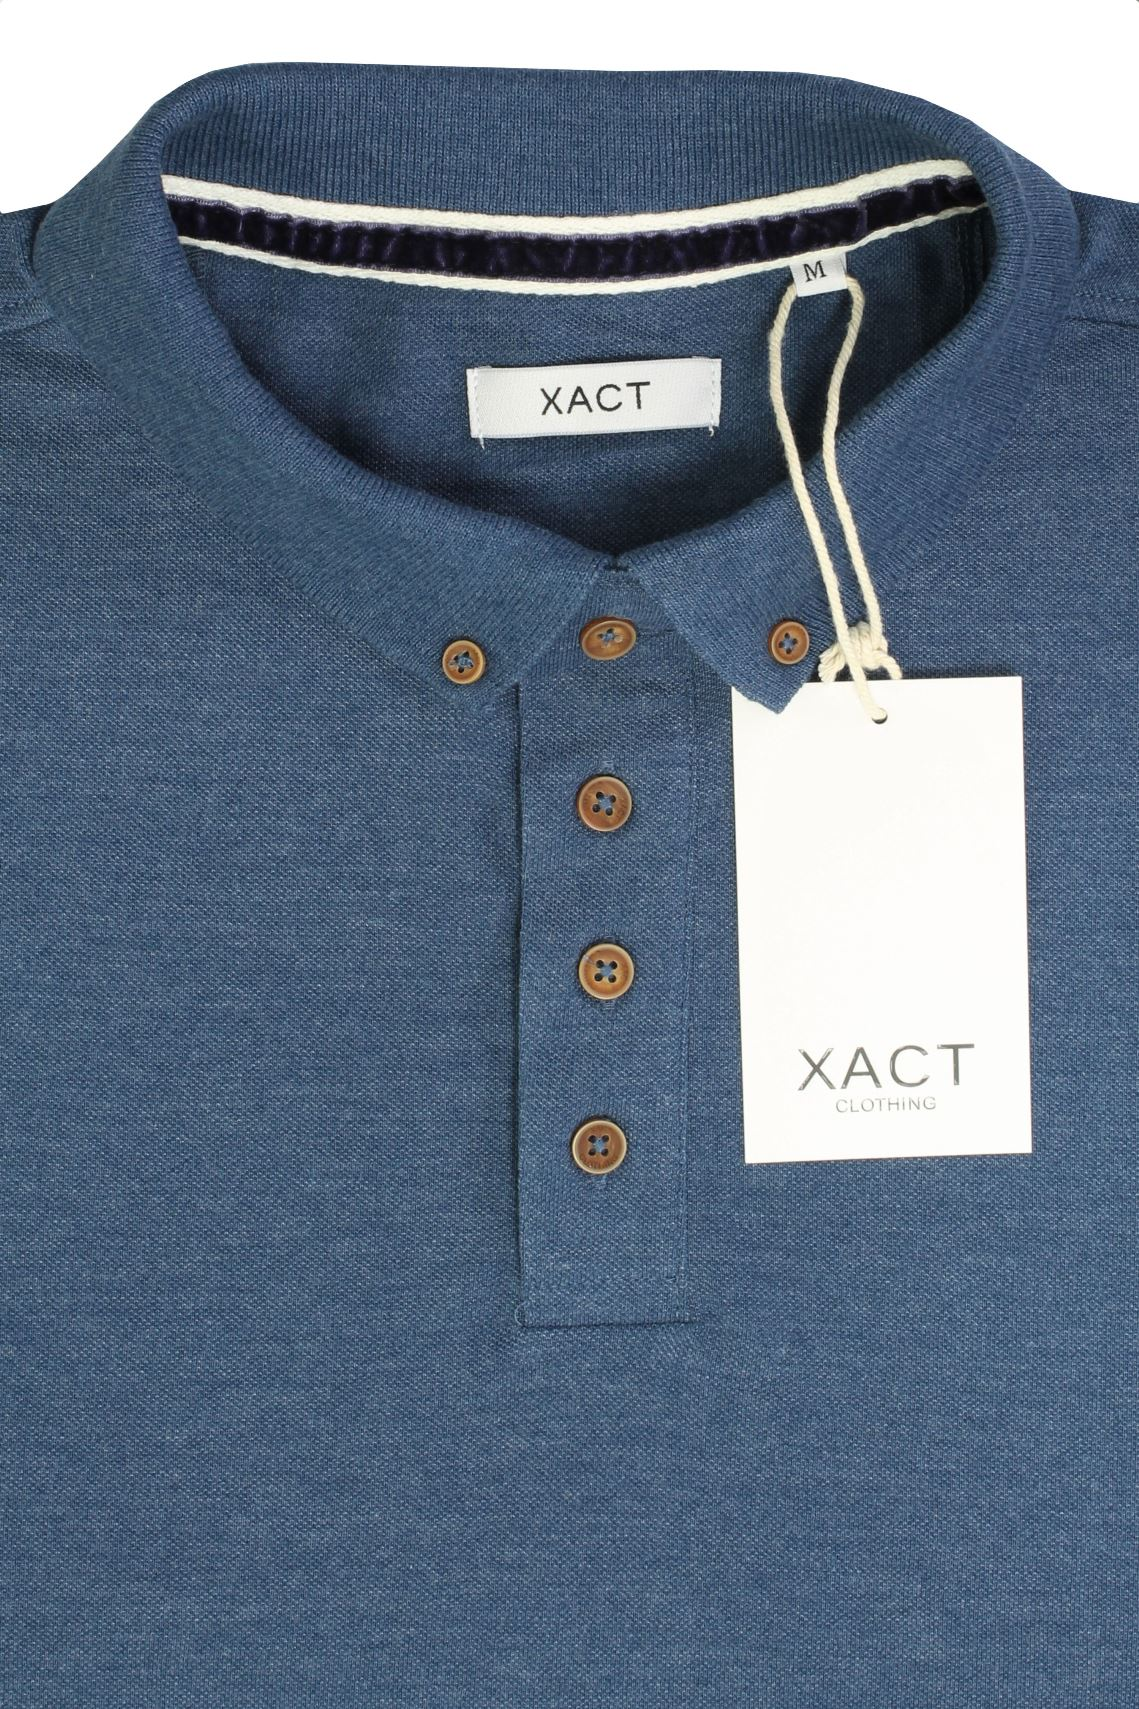 Mens Polo T-Shirt by Xact Pique Long Sleeved-4